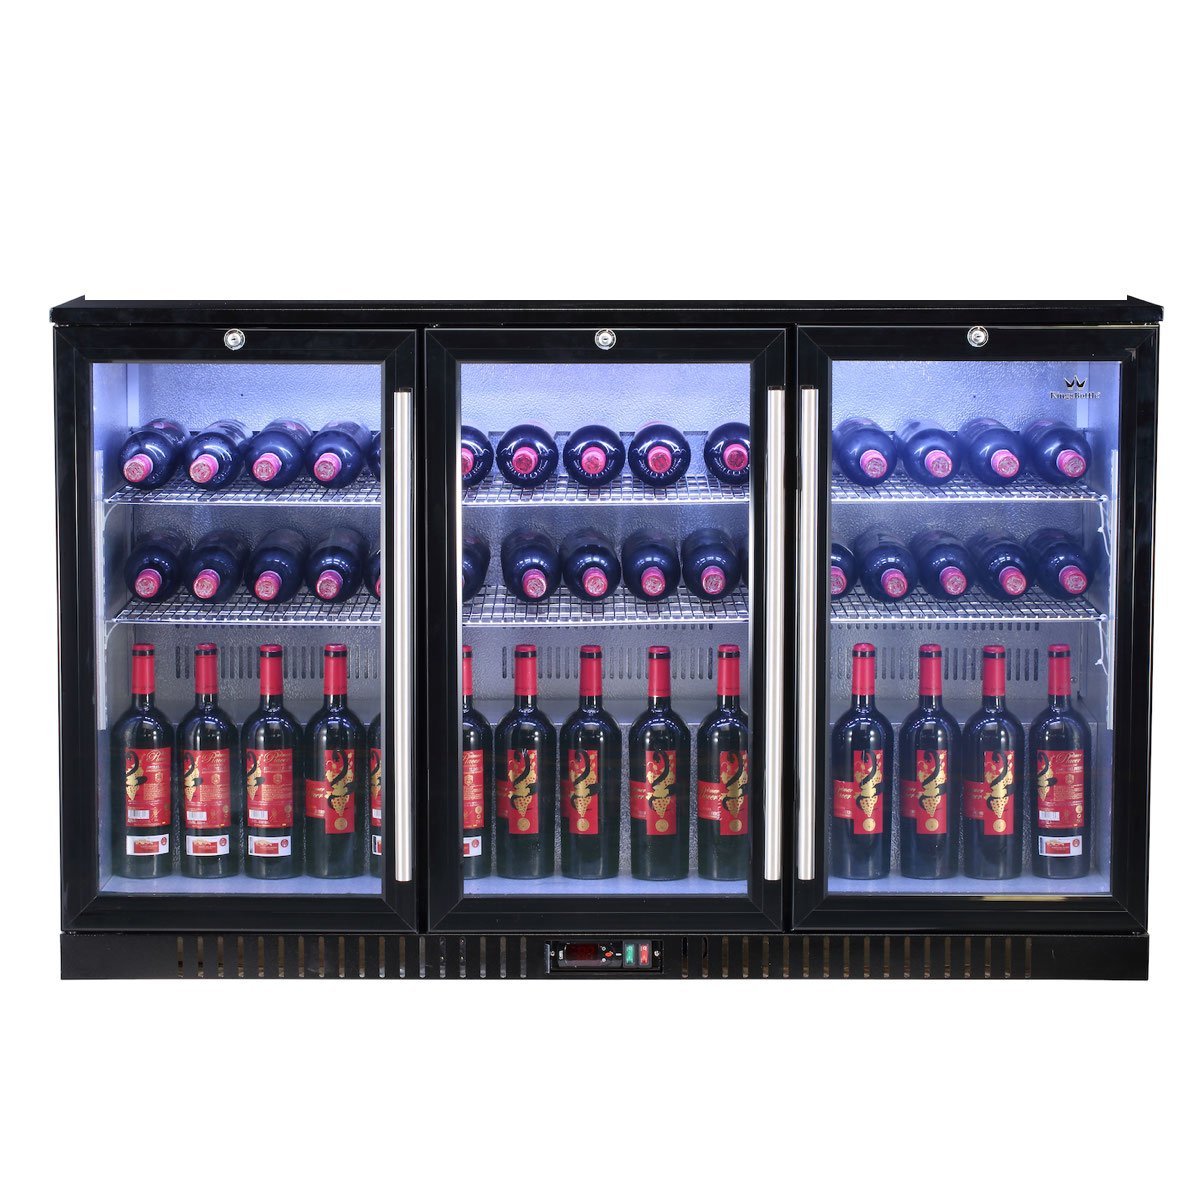 3-Door Back Bar Cooler Refrigerator - This beverage bar fridge features with Italian Carel Controller, LG Compressor, EBM Fan, Self-Closing Glass Door, perfect for bars, restaurants and game rooms.